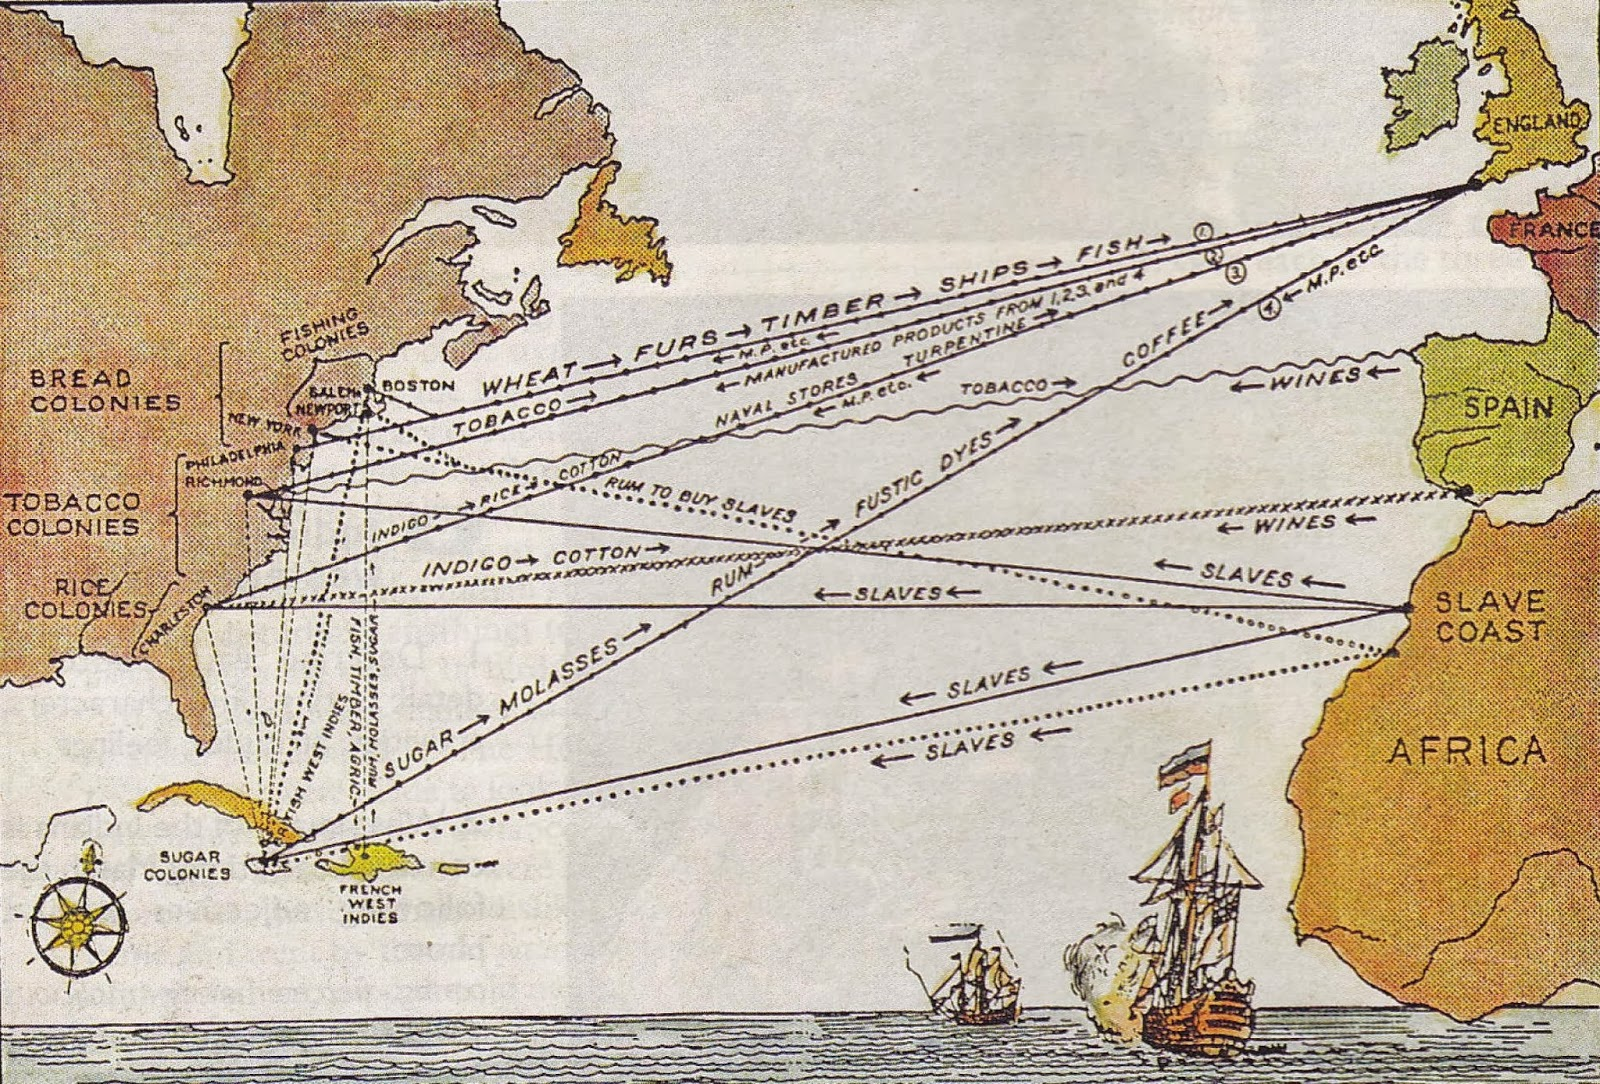 Middle passage triangular trade system